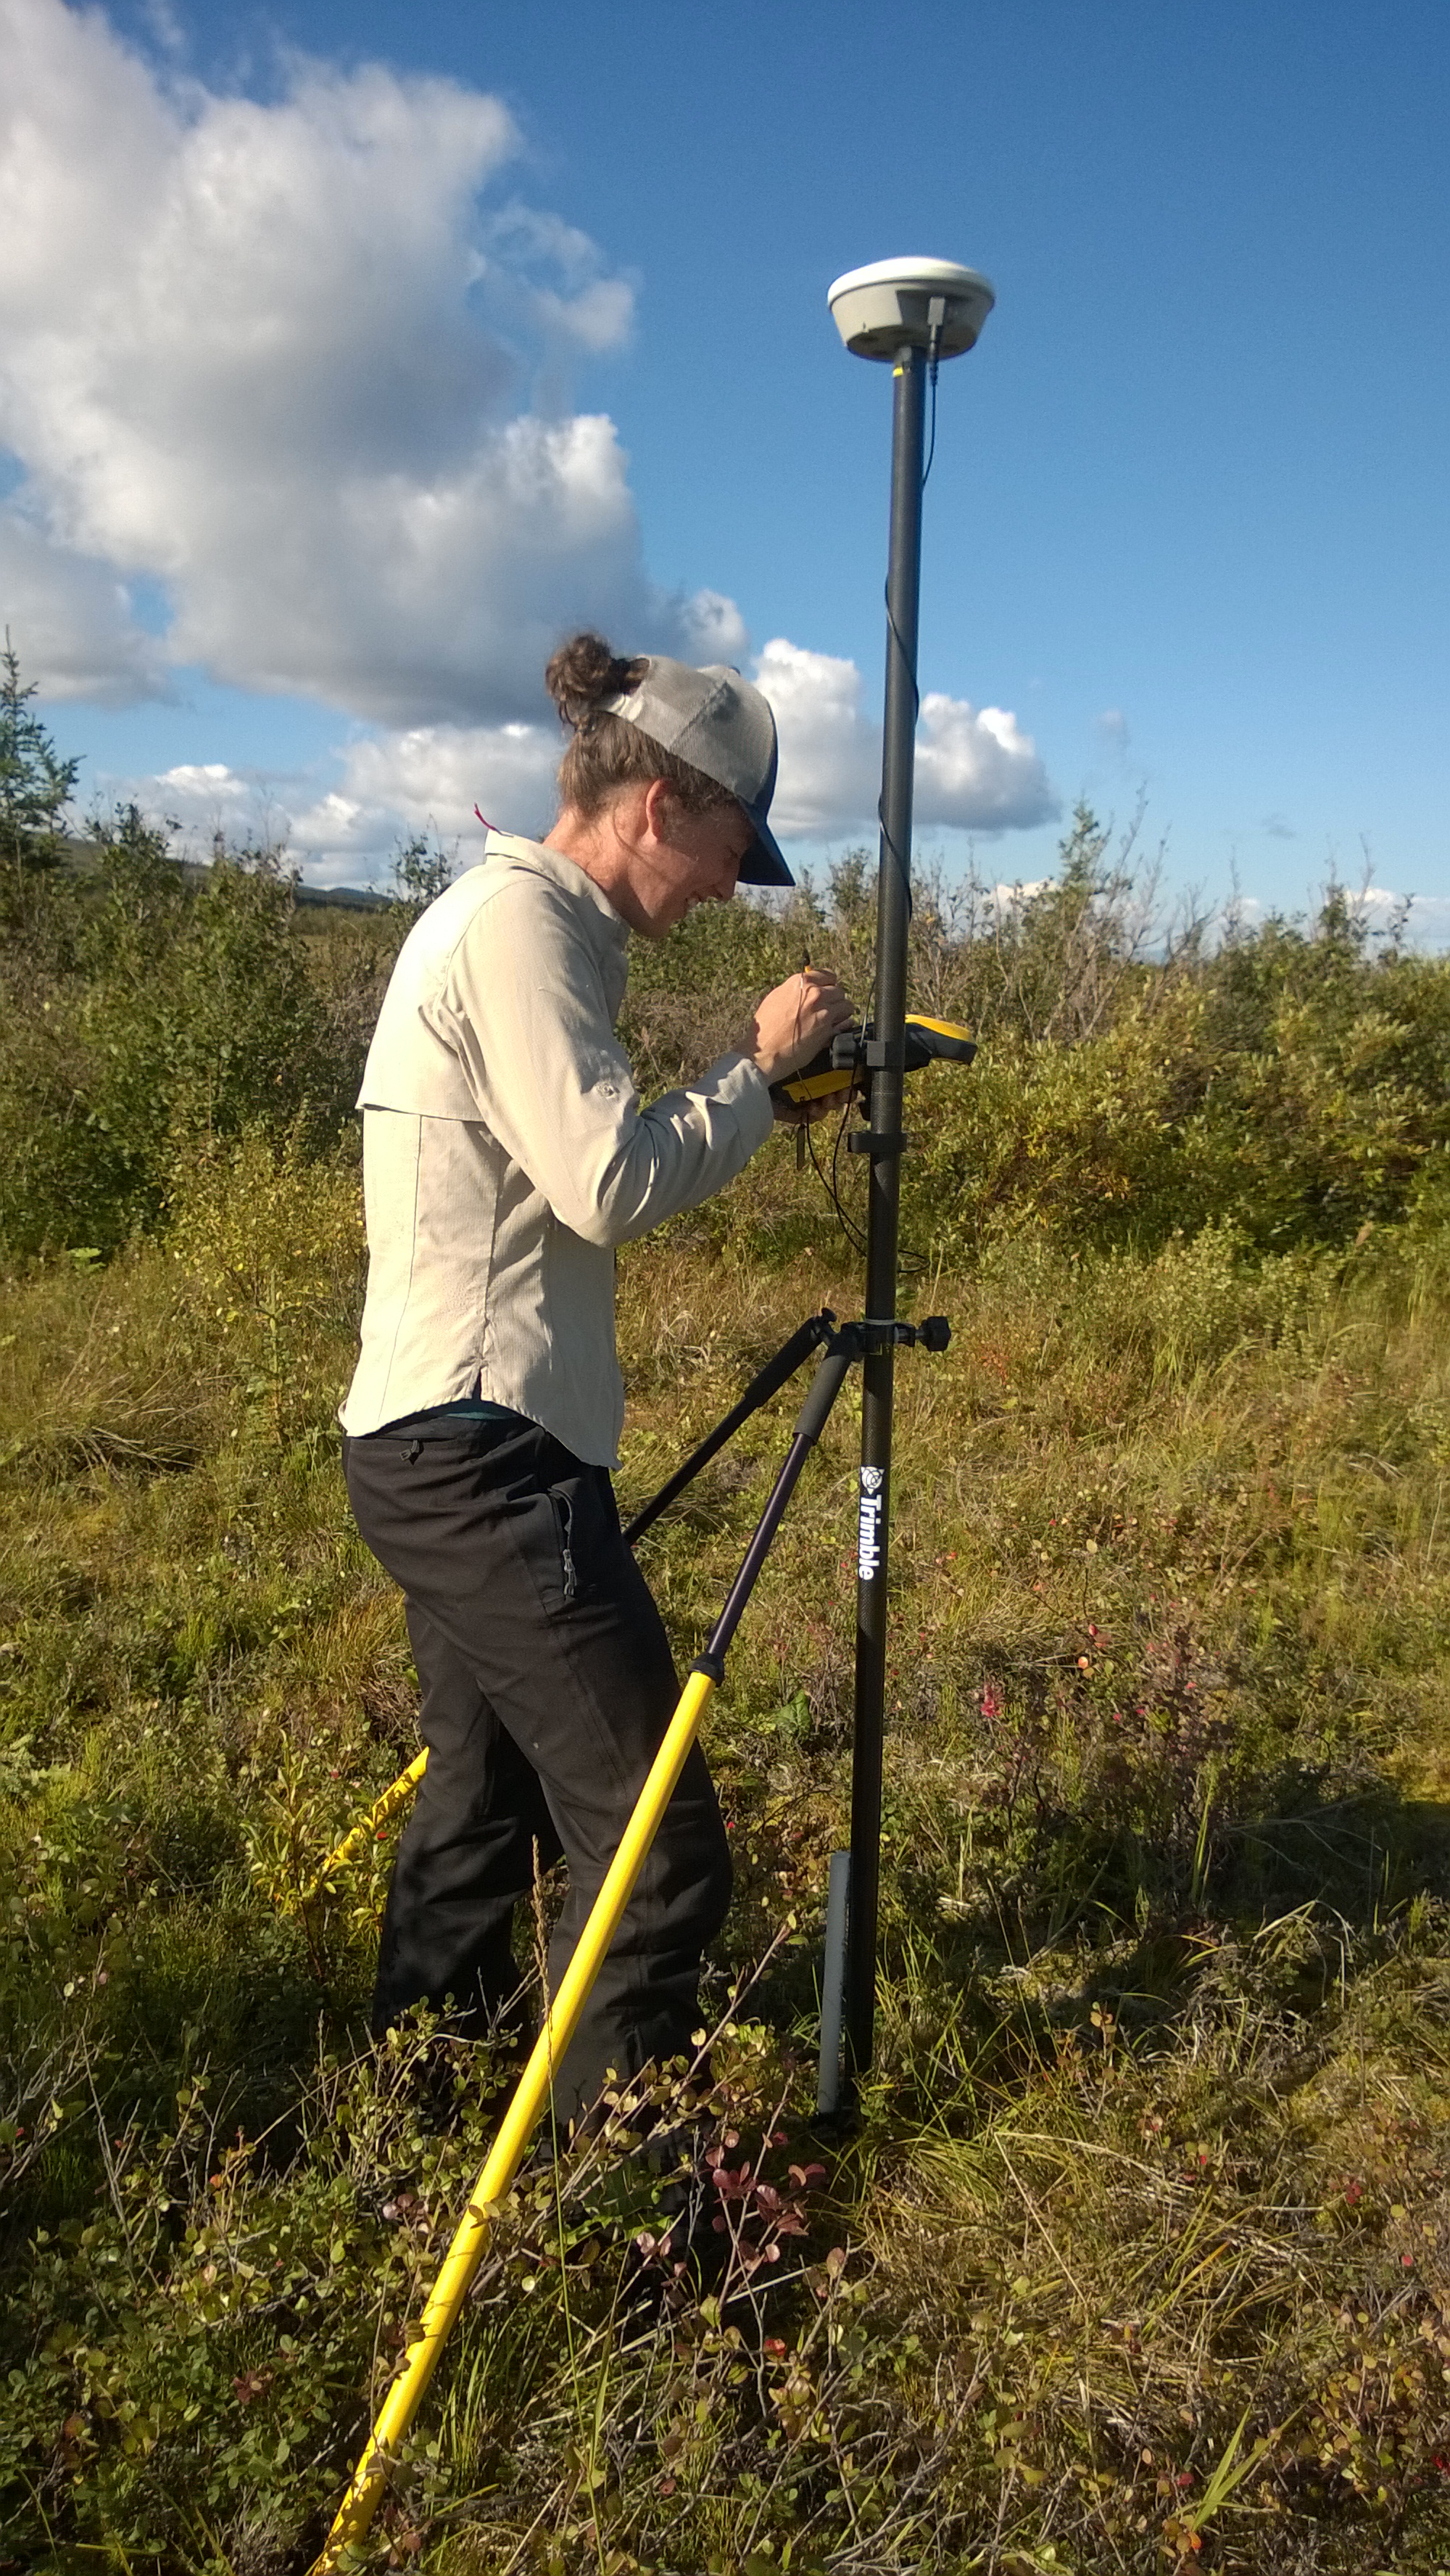 Katrine Gorham working at the NEON Alaska Healy site measuring study plots using survey equipment. Photo: NEON Alaska